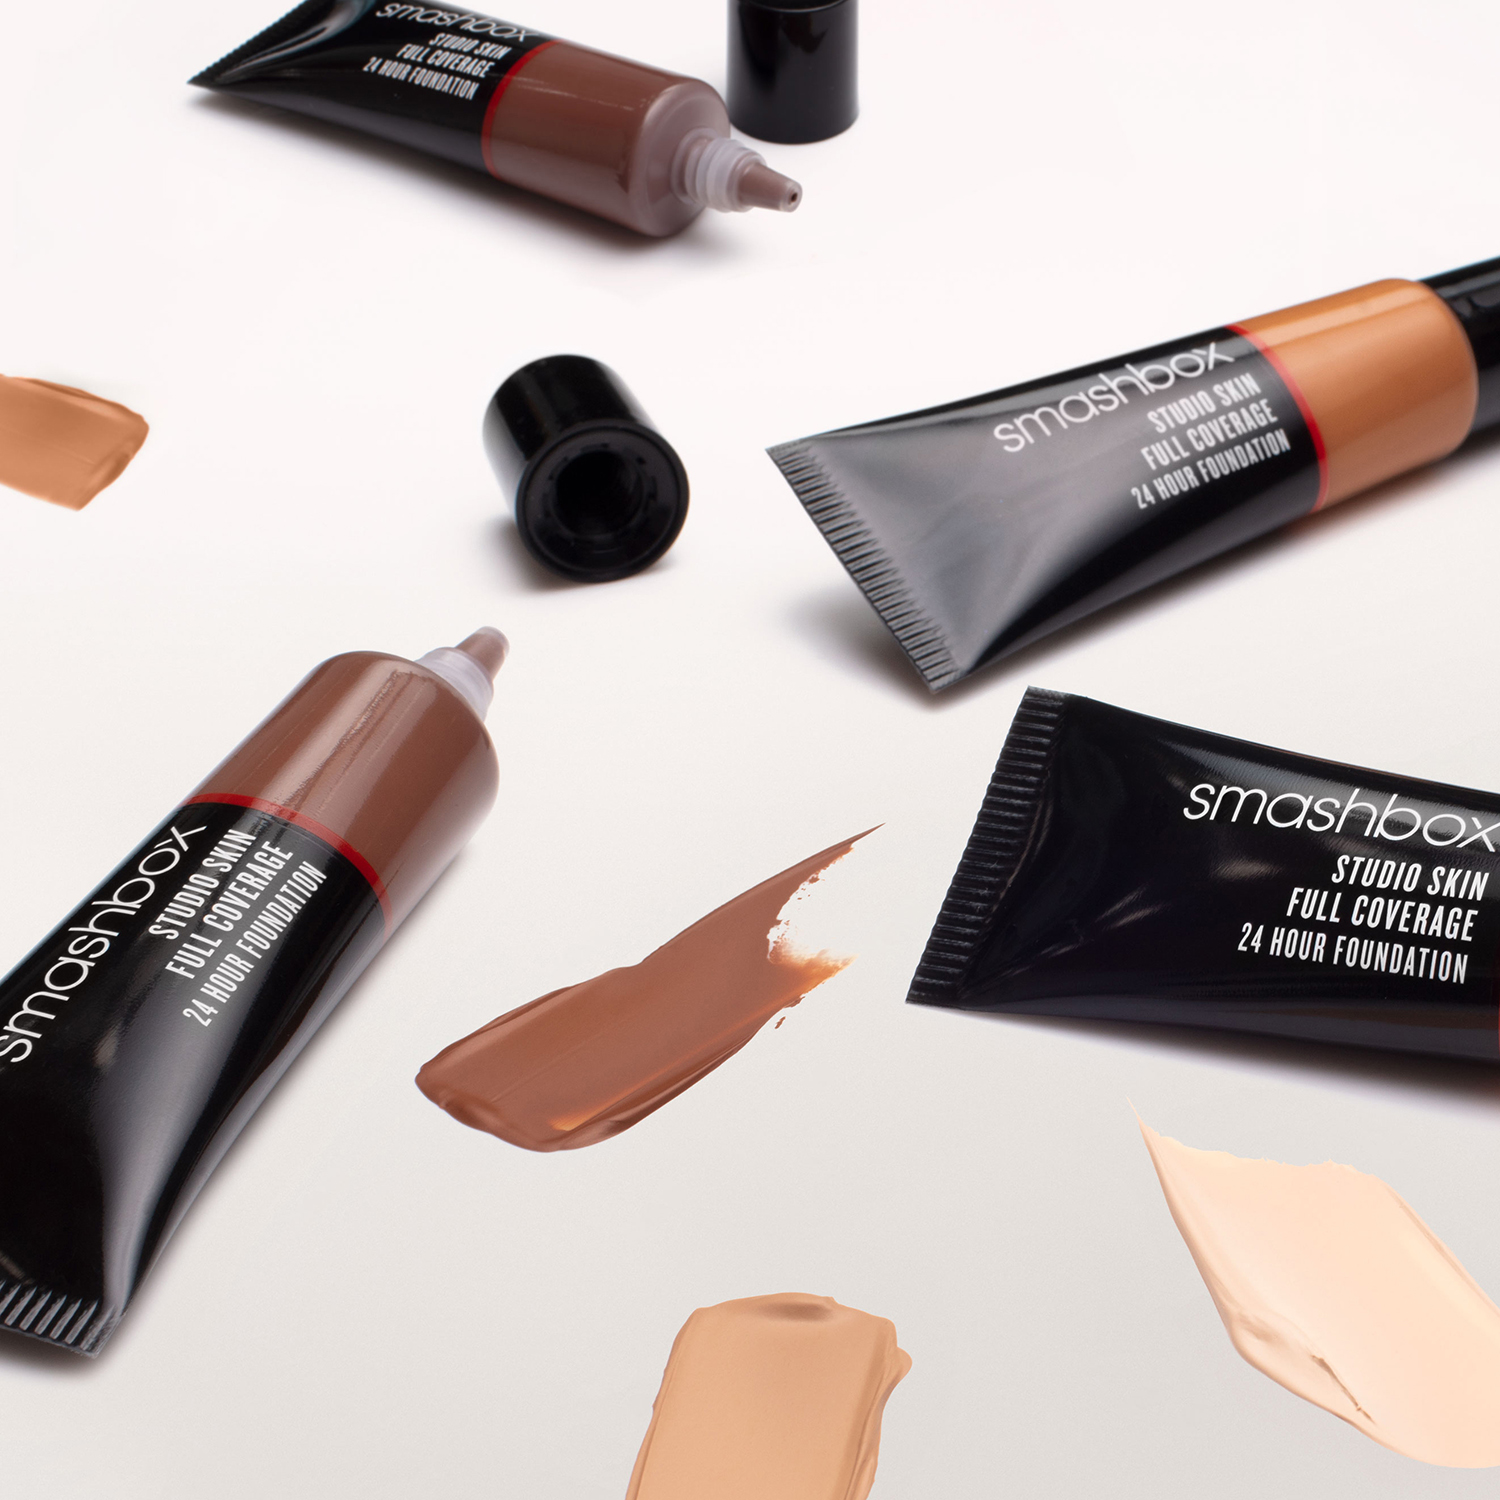 Праймер Photo Finish Oil & Shine Control от Smashbox